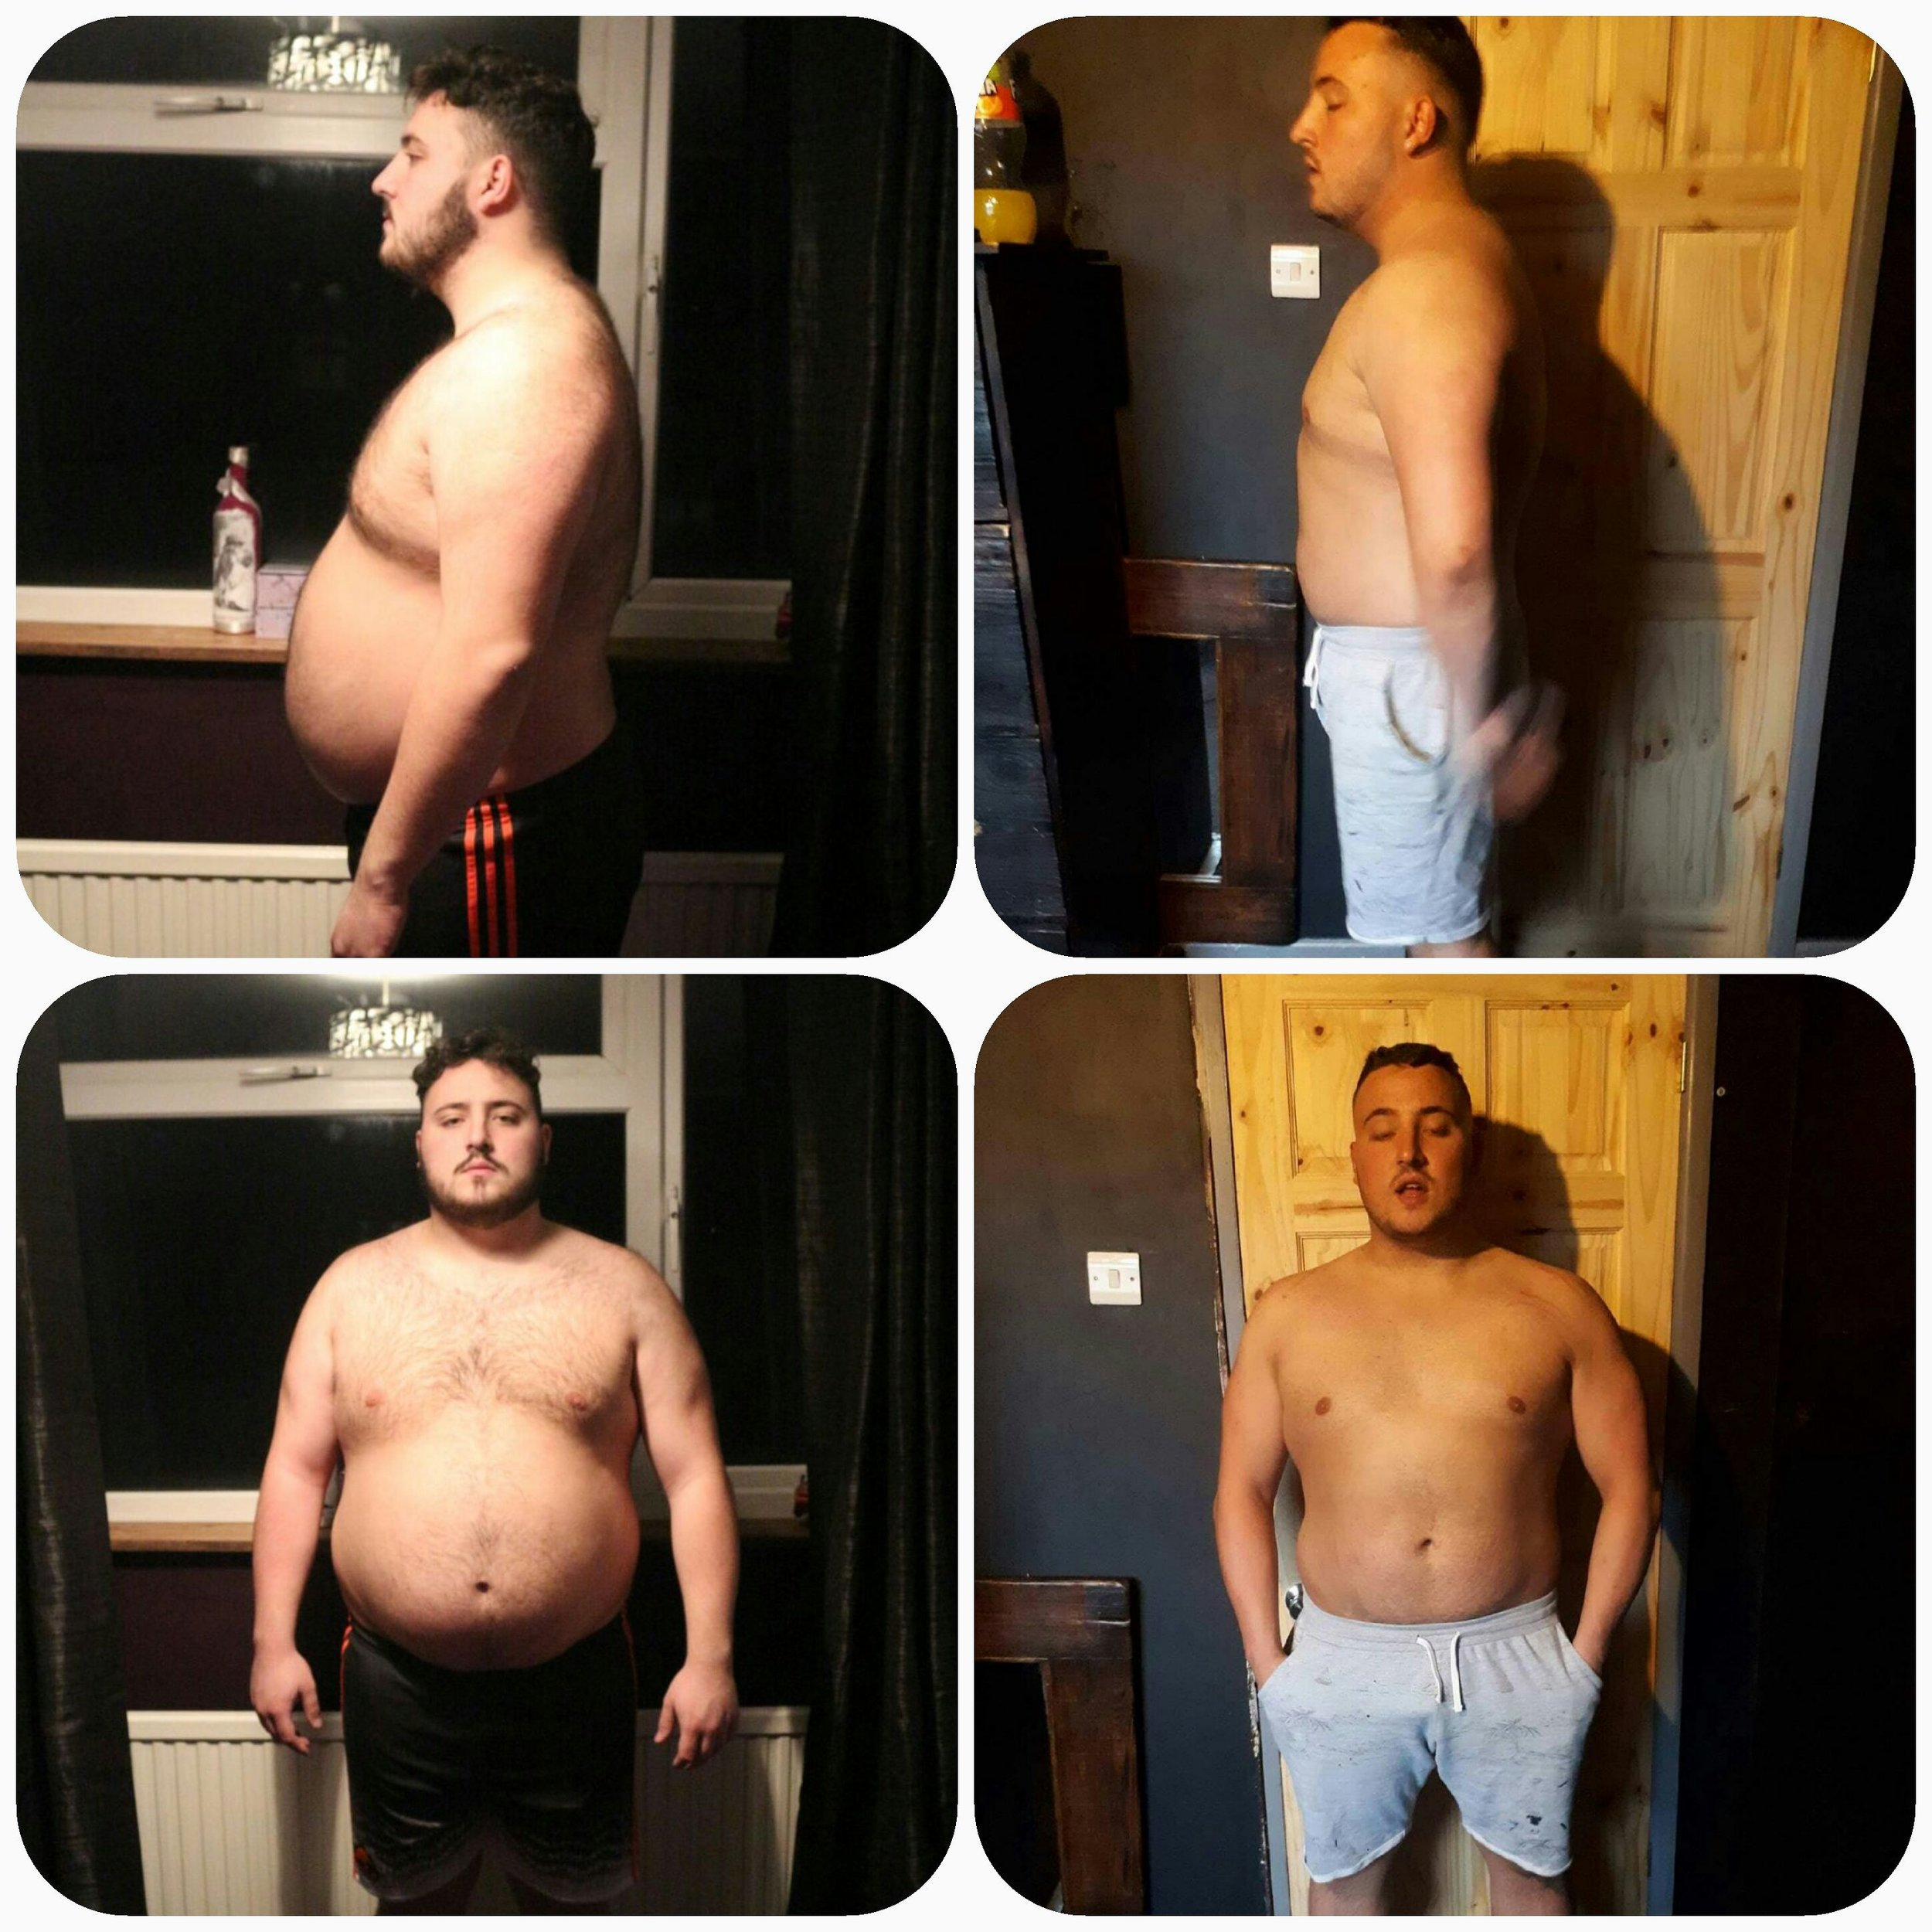 James - James came to the gym looking to make a healthy lifestyle change after gaining a bit of weight and losing self confidence. James reached his target weight after losing over 3 stone.